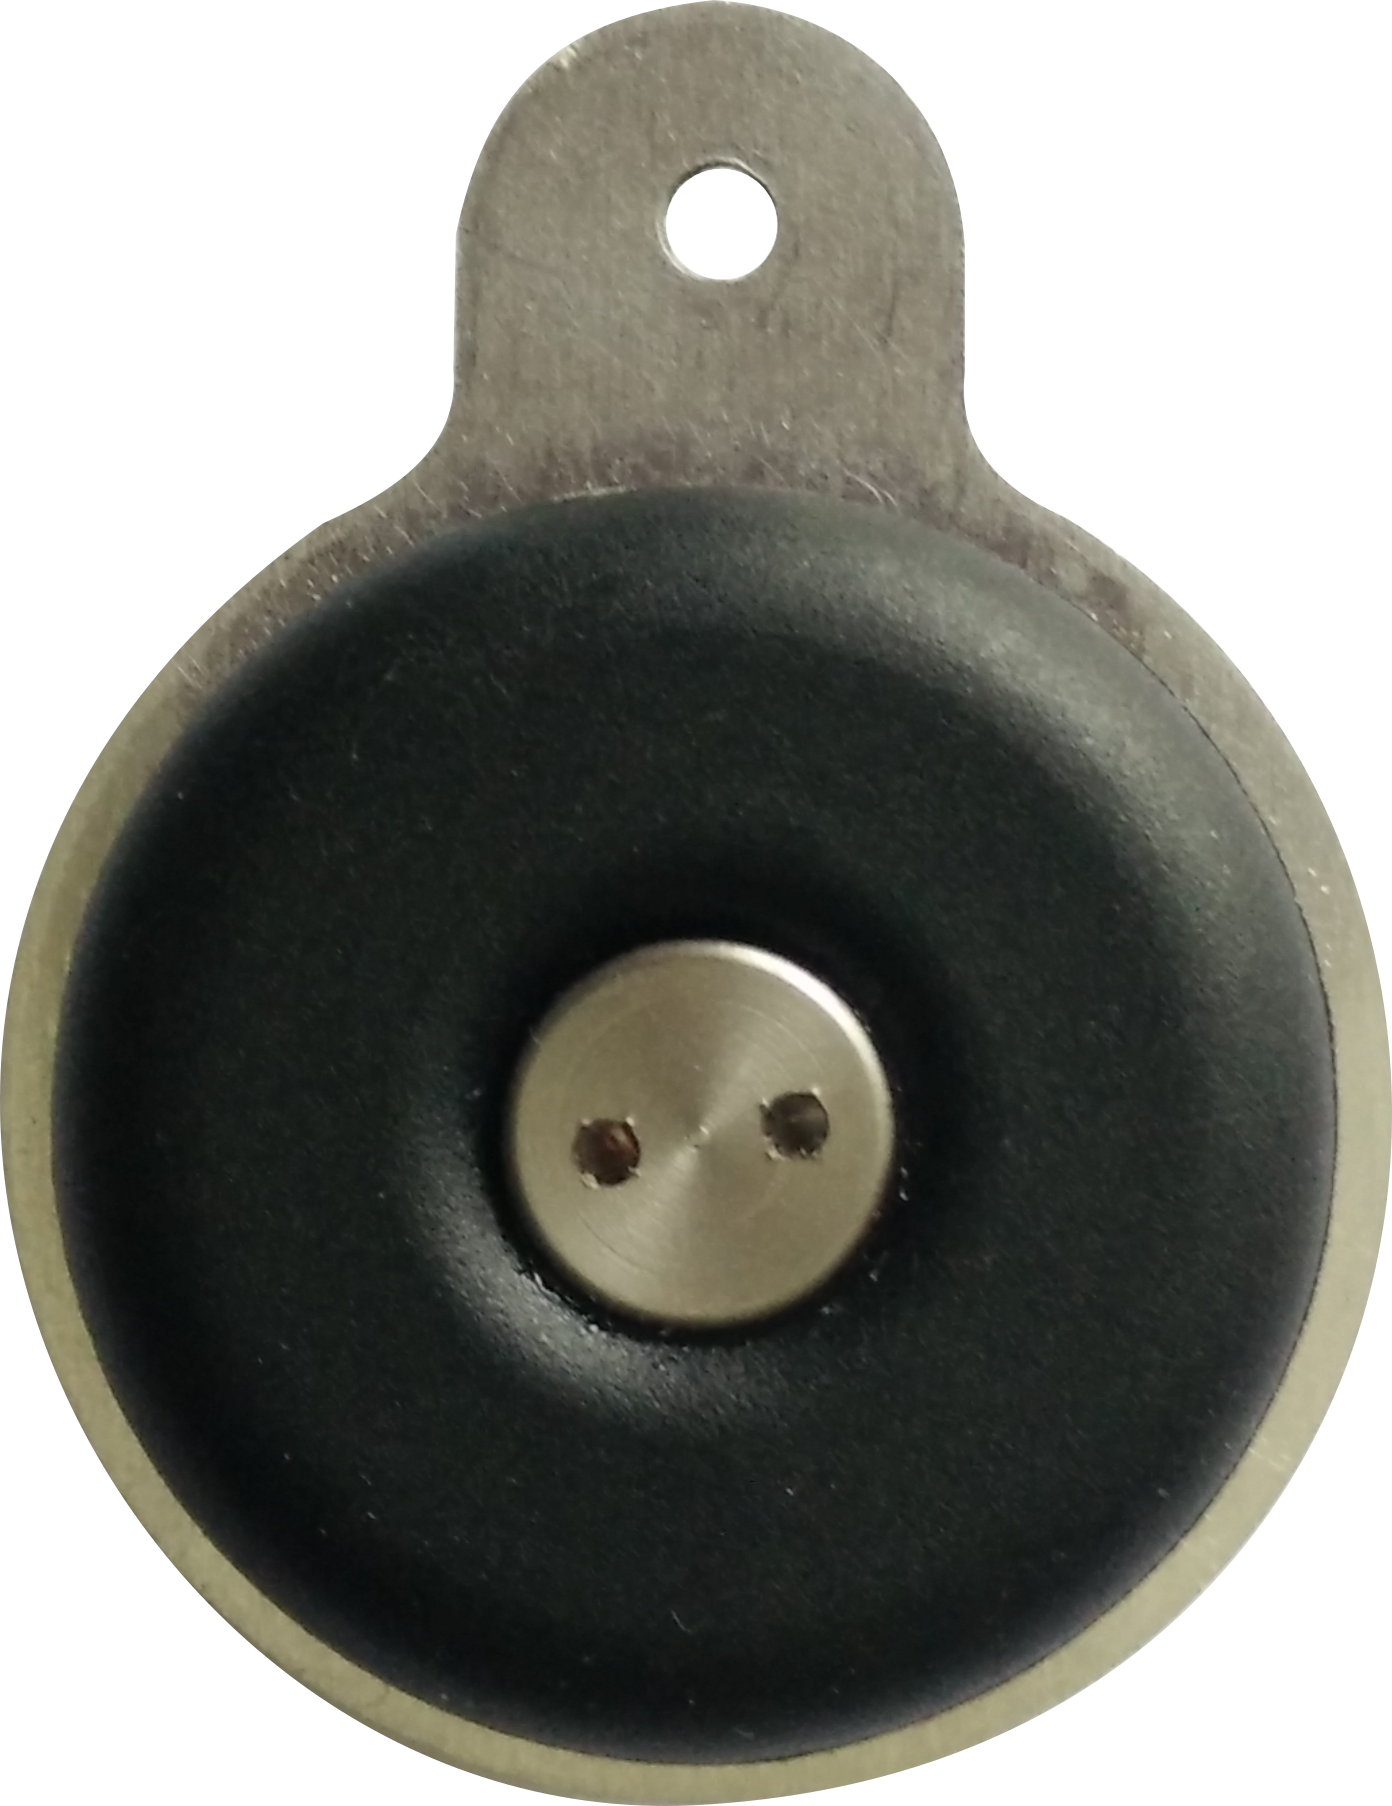 Dog Tag - Click link to view animation